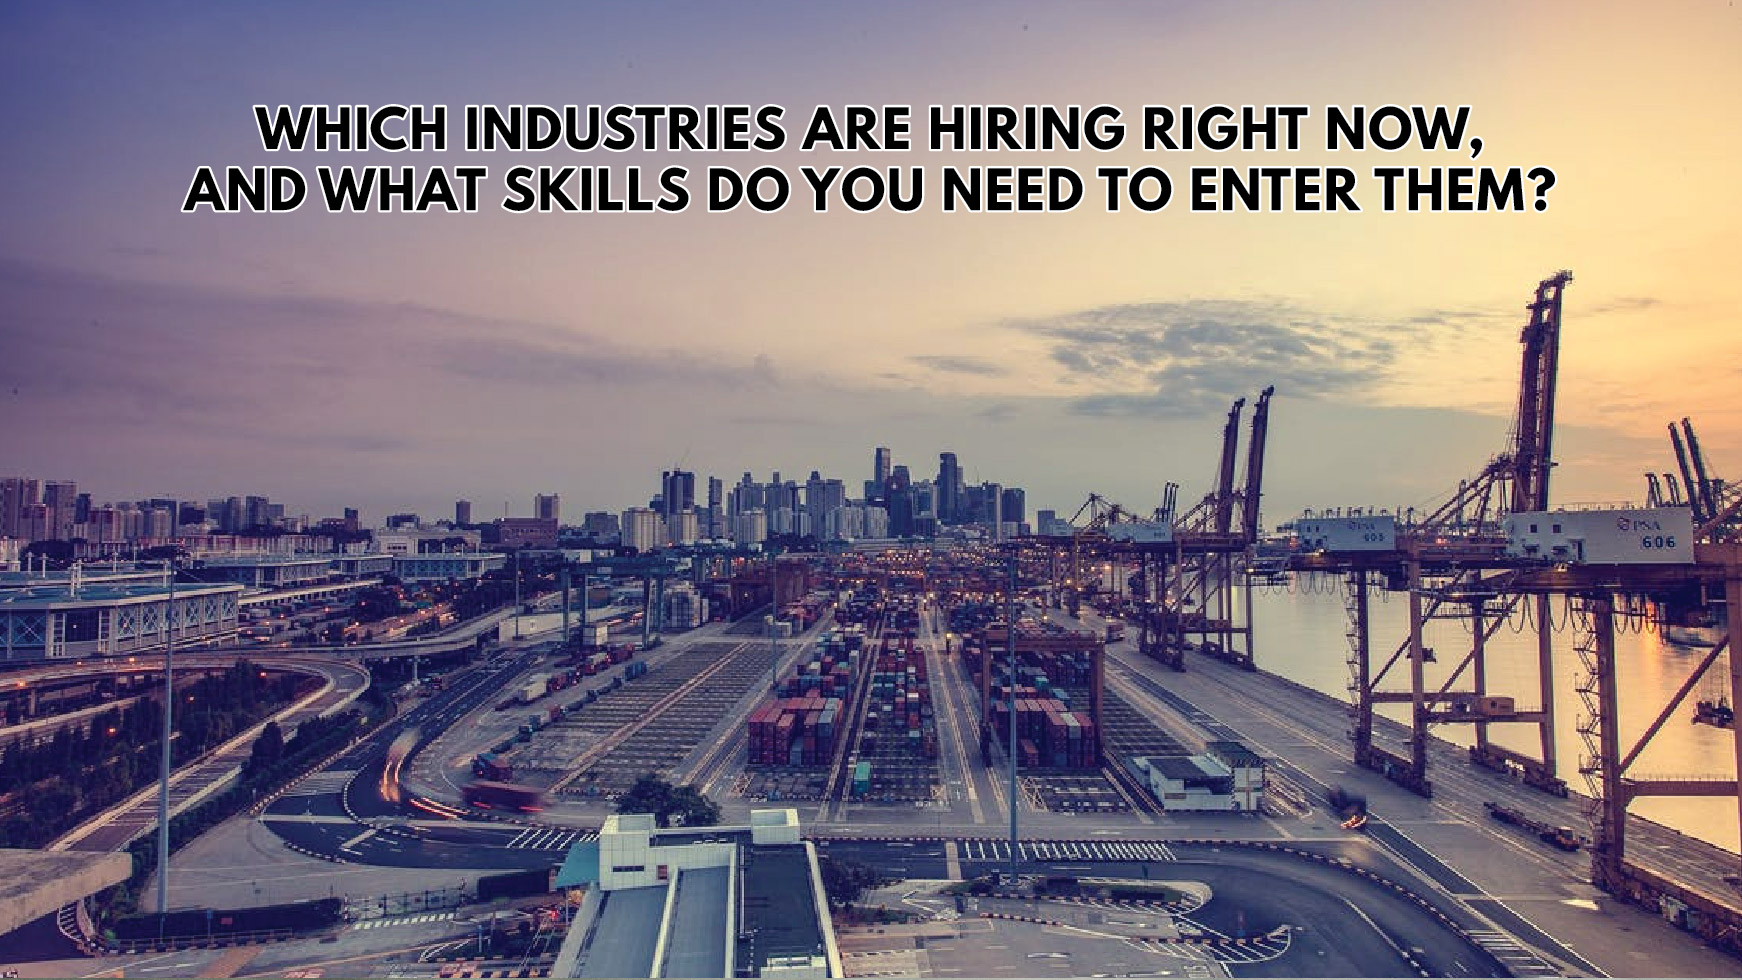 Gradsingapore_Which Industries Are Hiring Right Now, and What Skills Do You Need to Enter Them_Featured Image